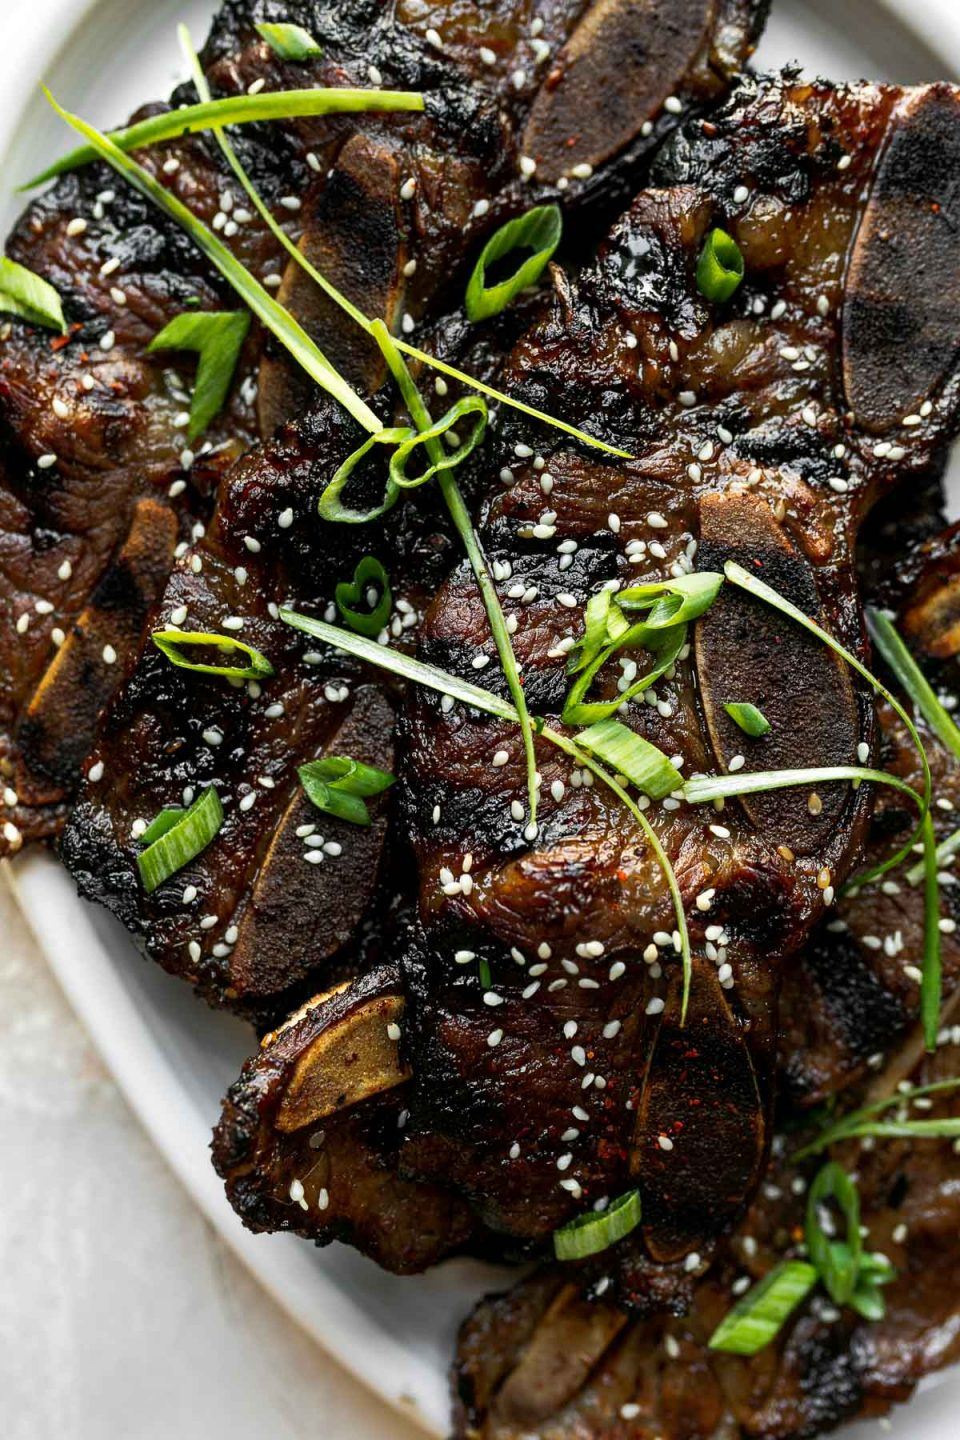 Kalbi beef short ribs on a white serving plate, topped with sesame seeds & thin sliced green onions. The platter sits atop a cement surface.